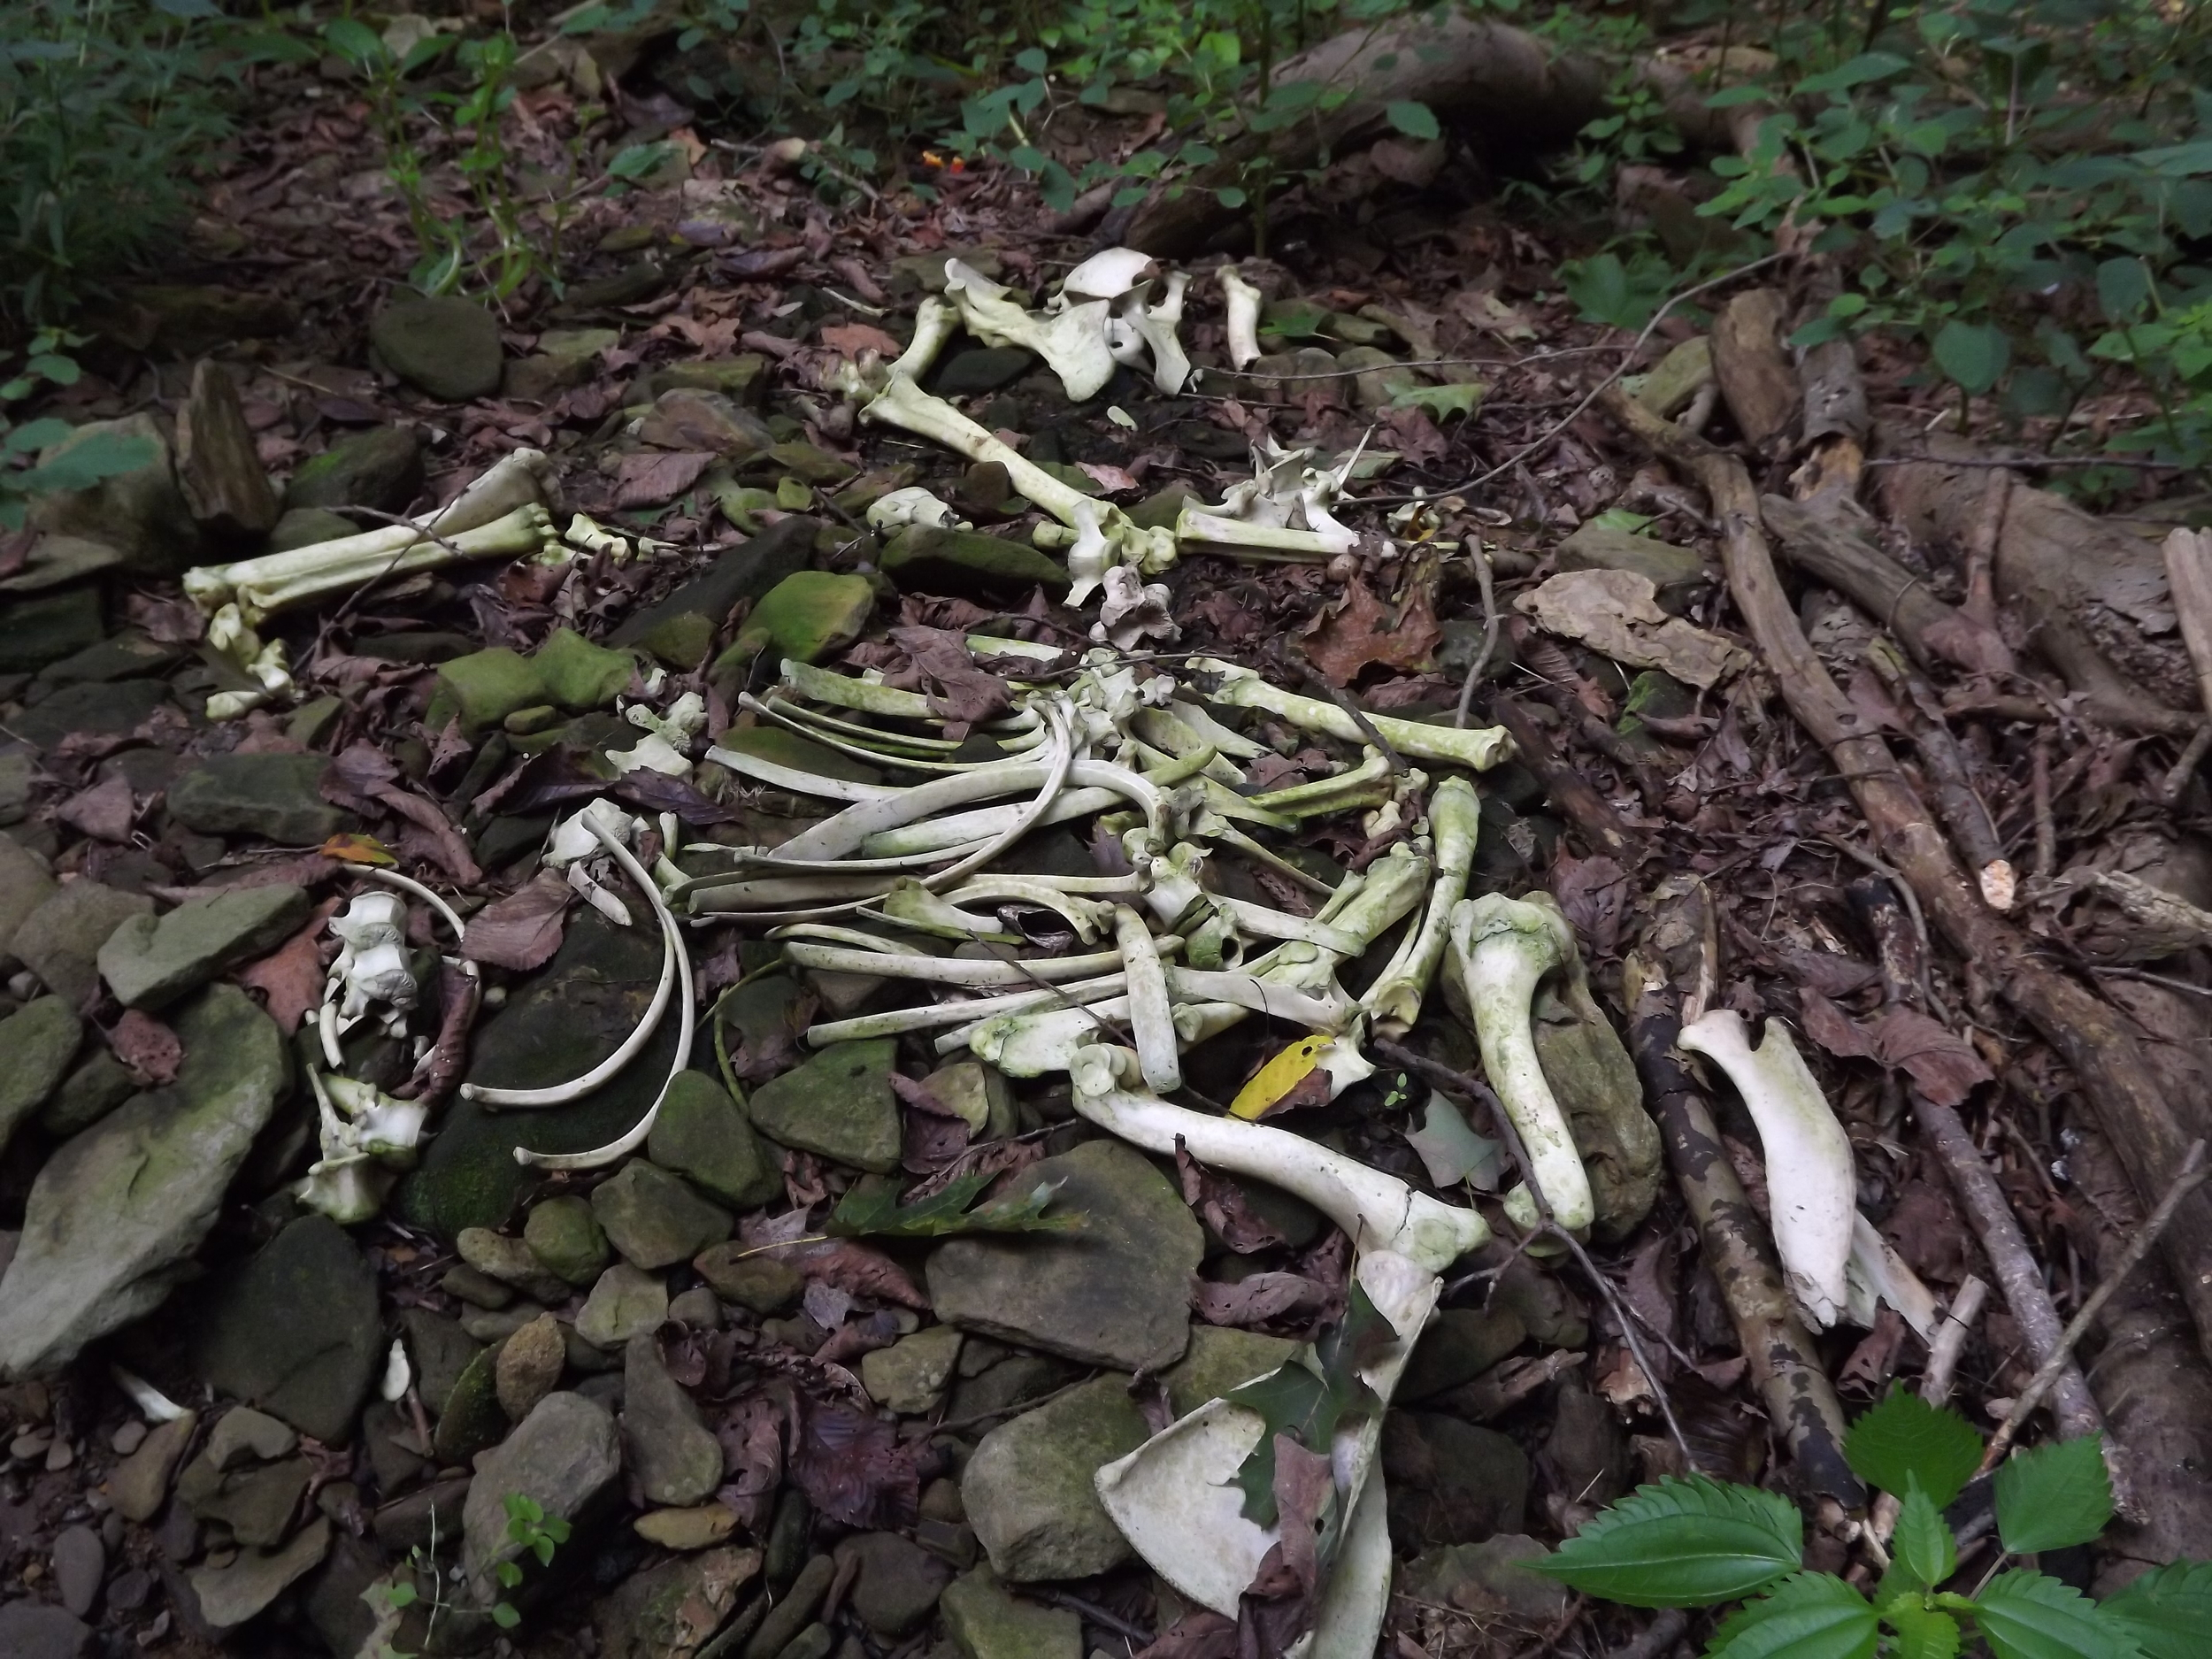 Bone Pile - We were walking up a small tributary off of Backbone road when we came to a large pile of deer bones. It seemed like the majority of the bones were from one deer, but then we found a couple of other skulls nearby and since we were just below the road, I'm guessing the borough must toss road kill deer over the hill there.